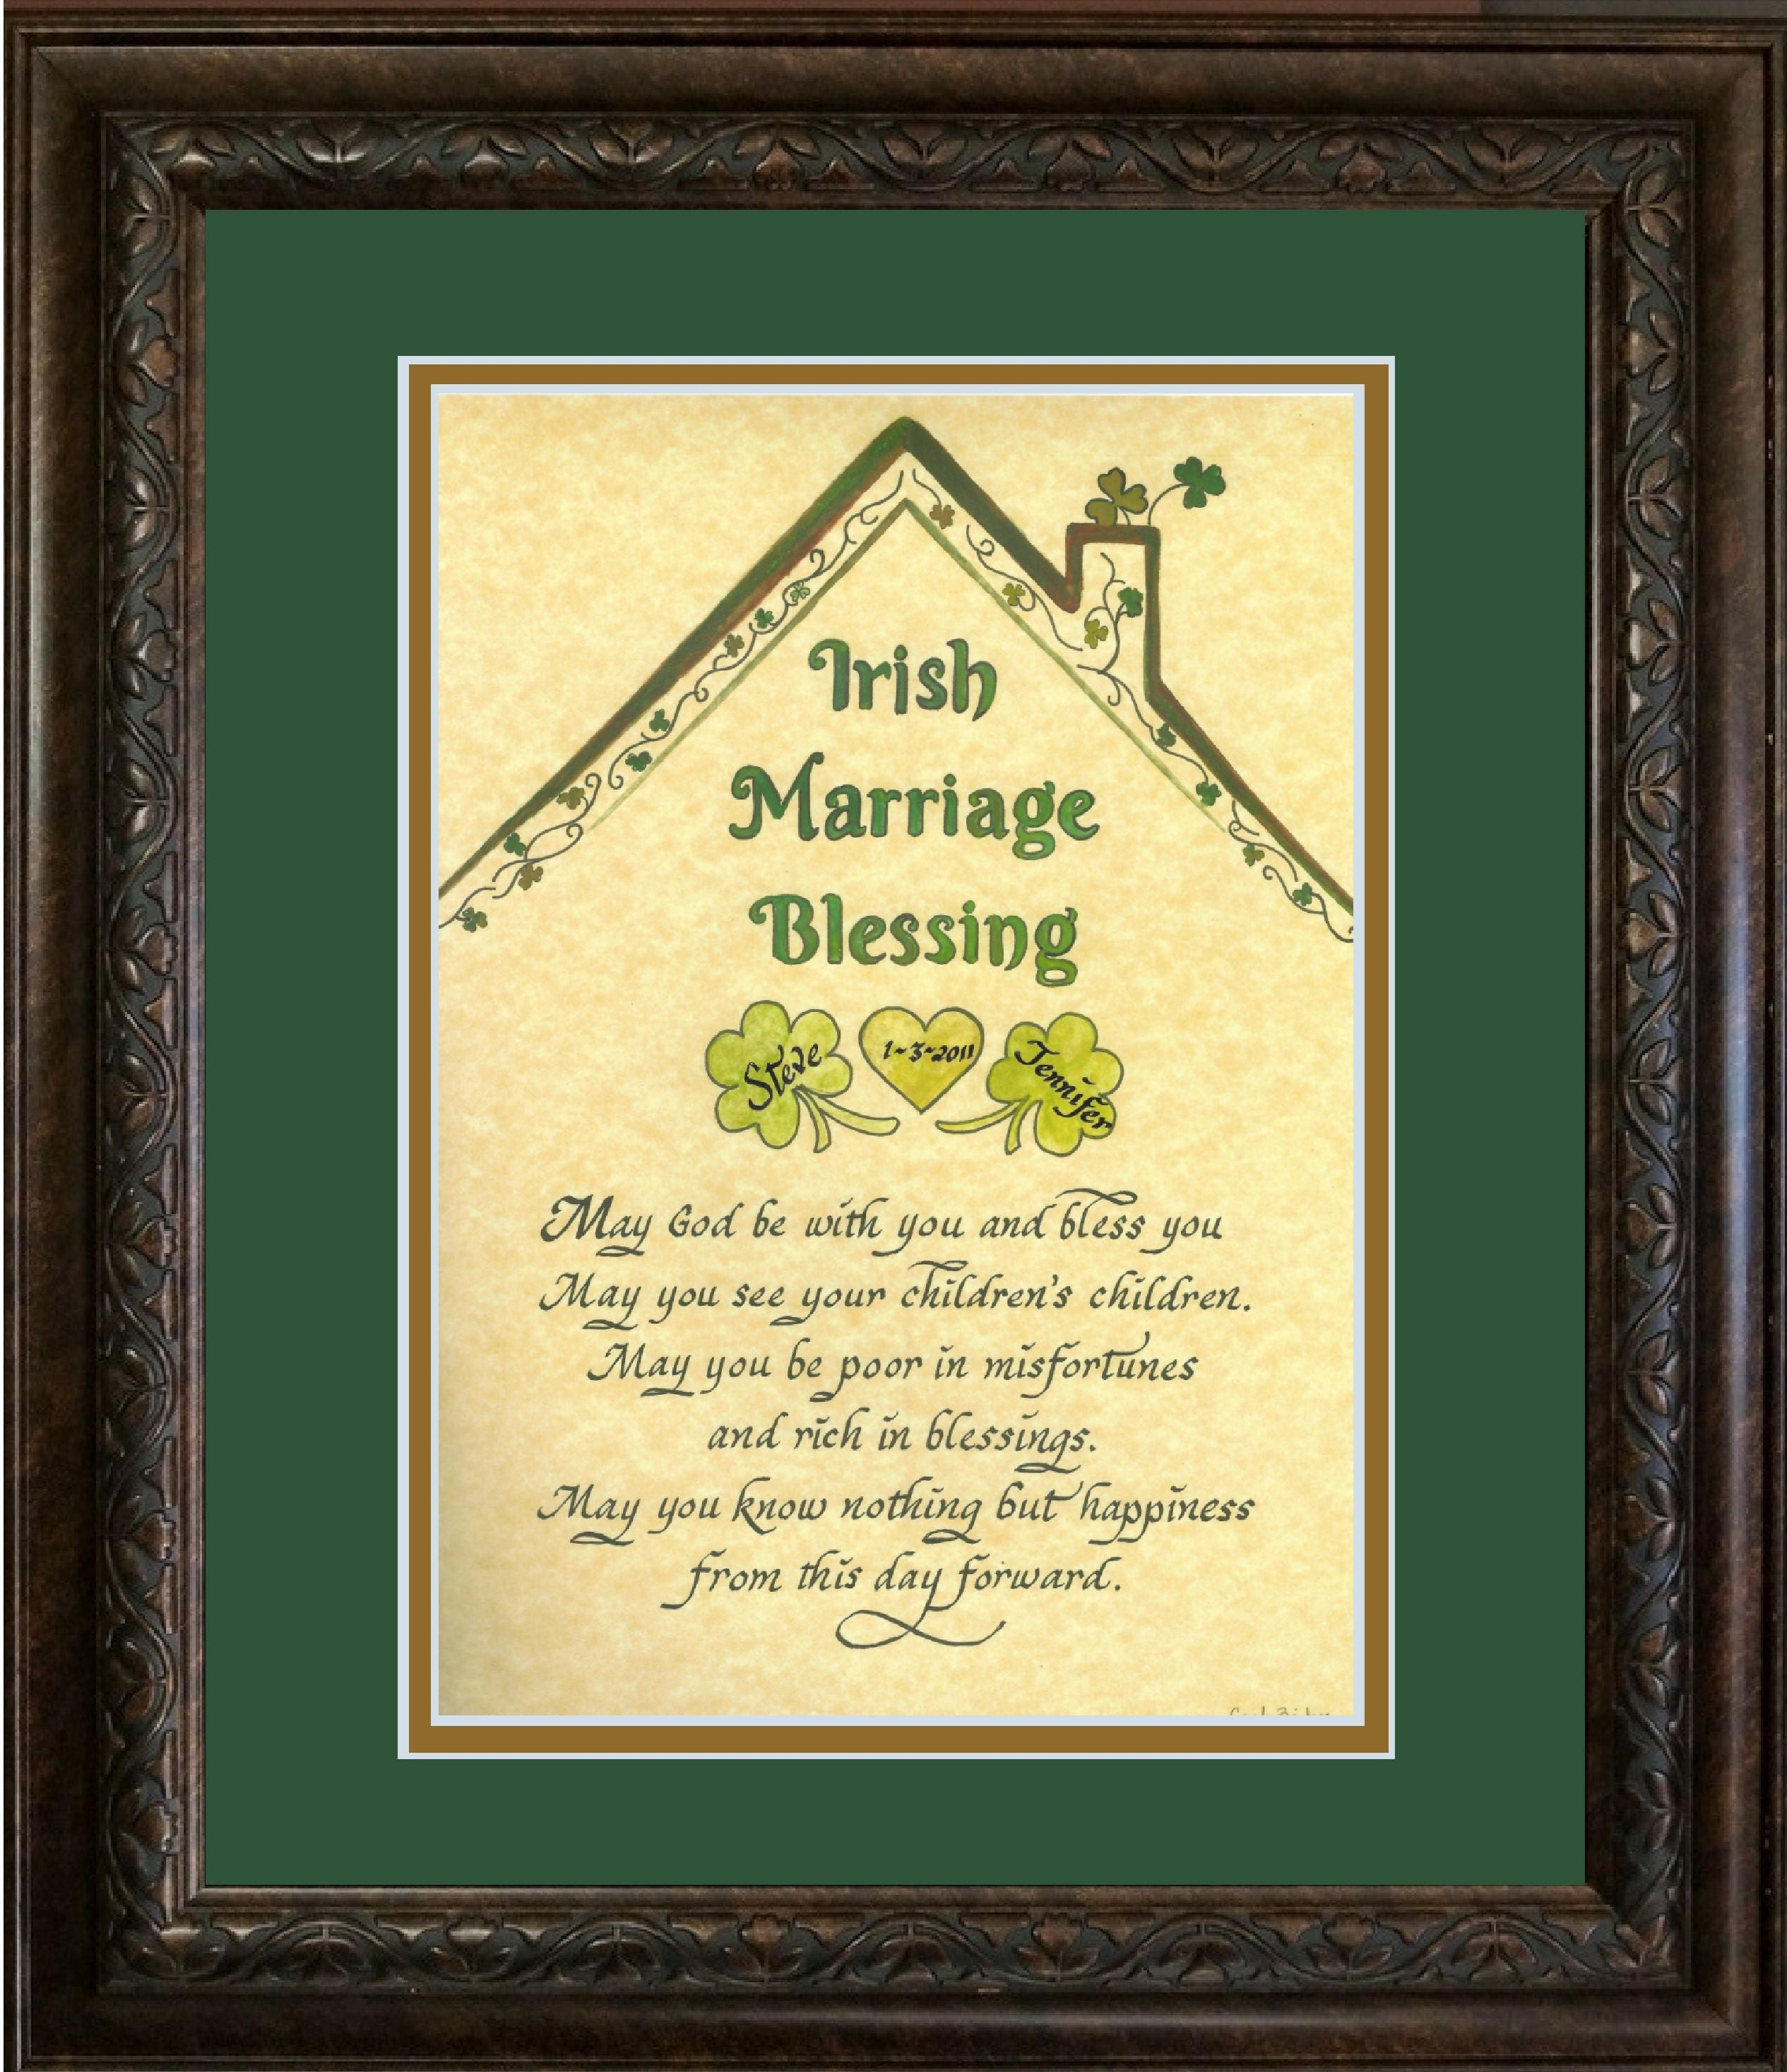 Irish Blessing Wedding Marriage Blessing with shamrocks and | Etsy